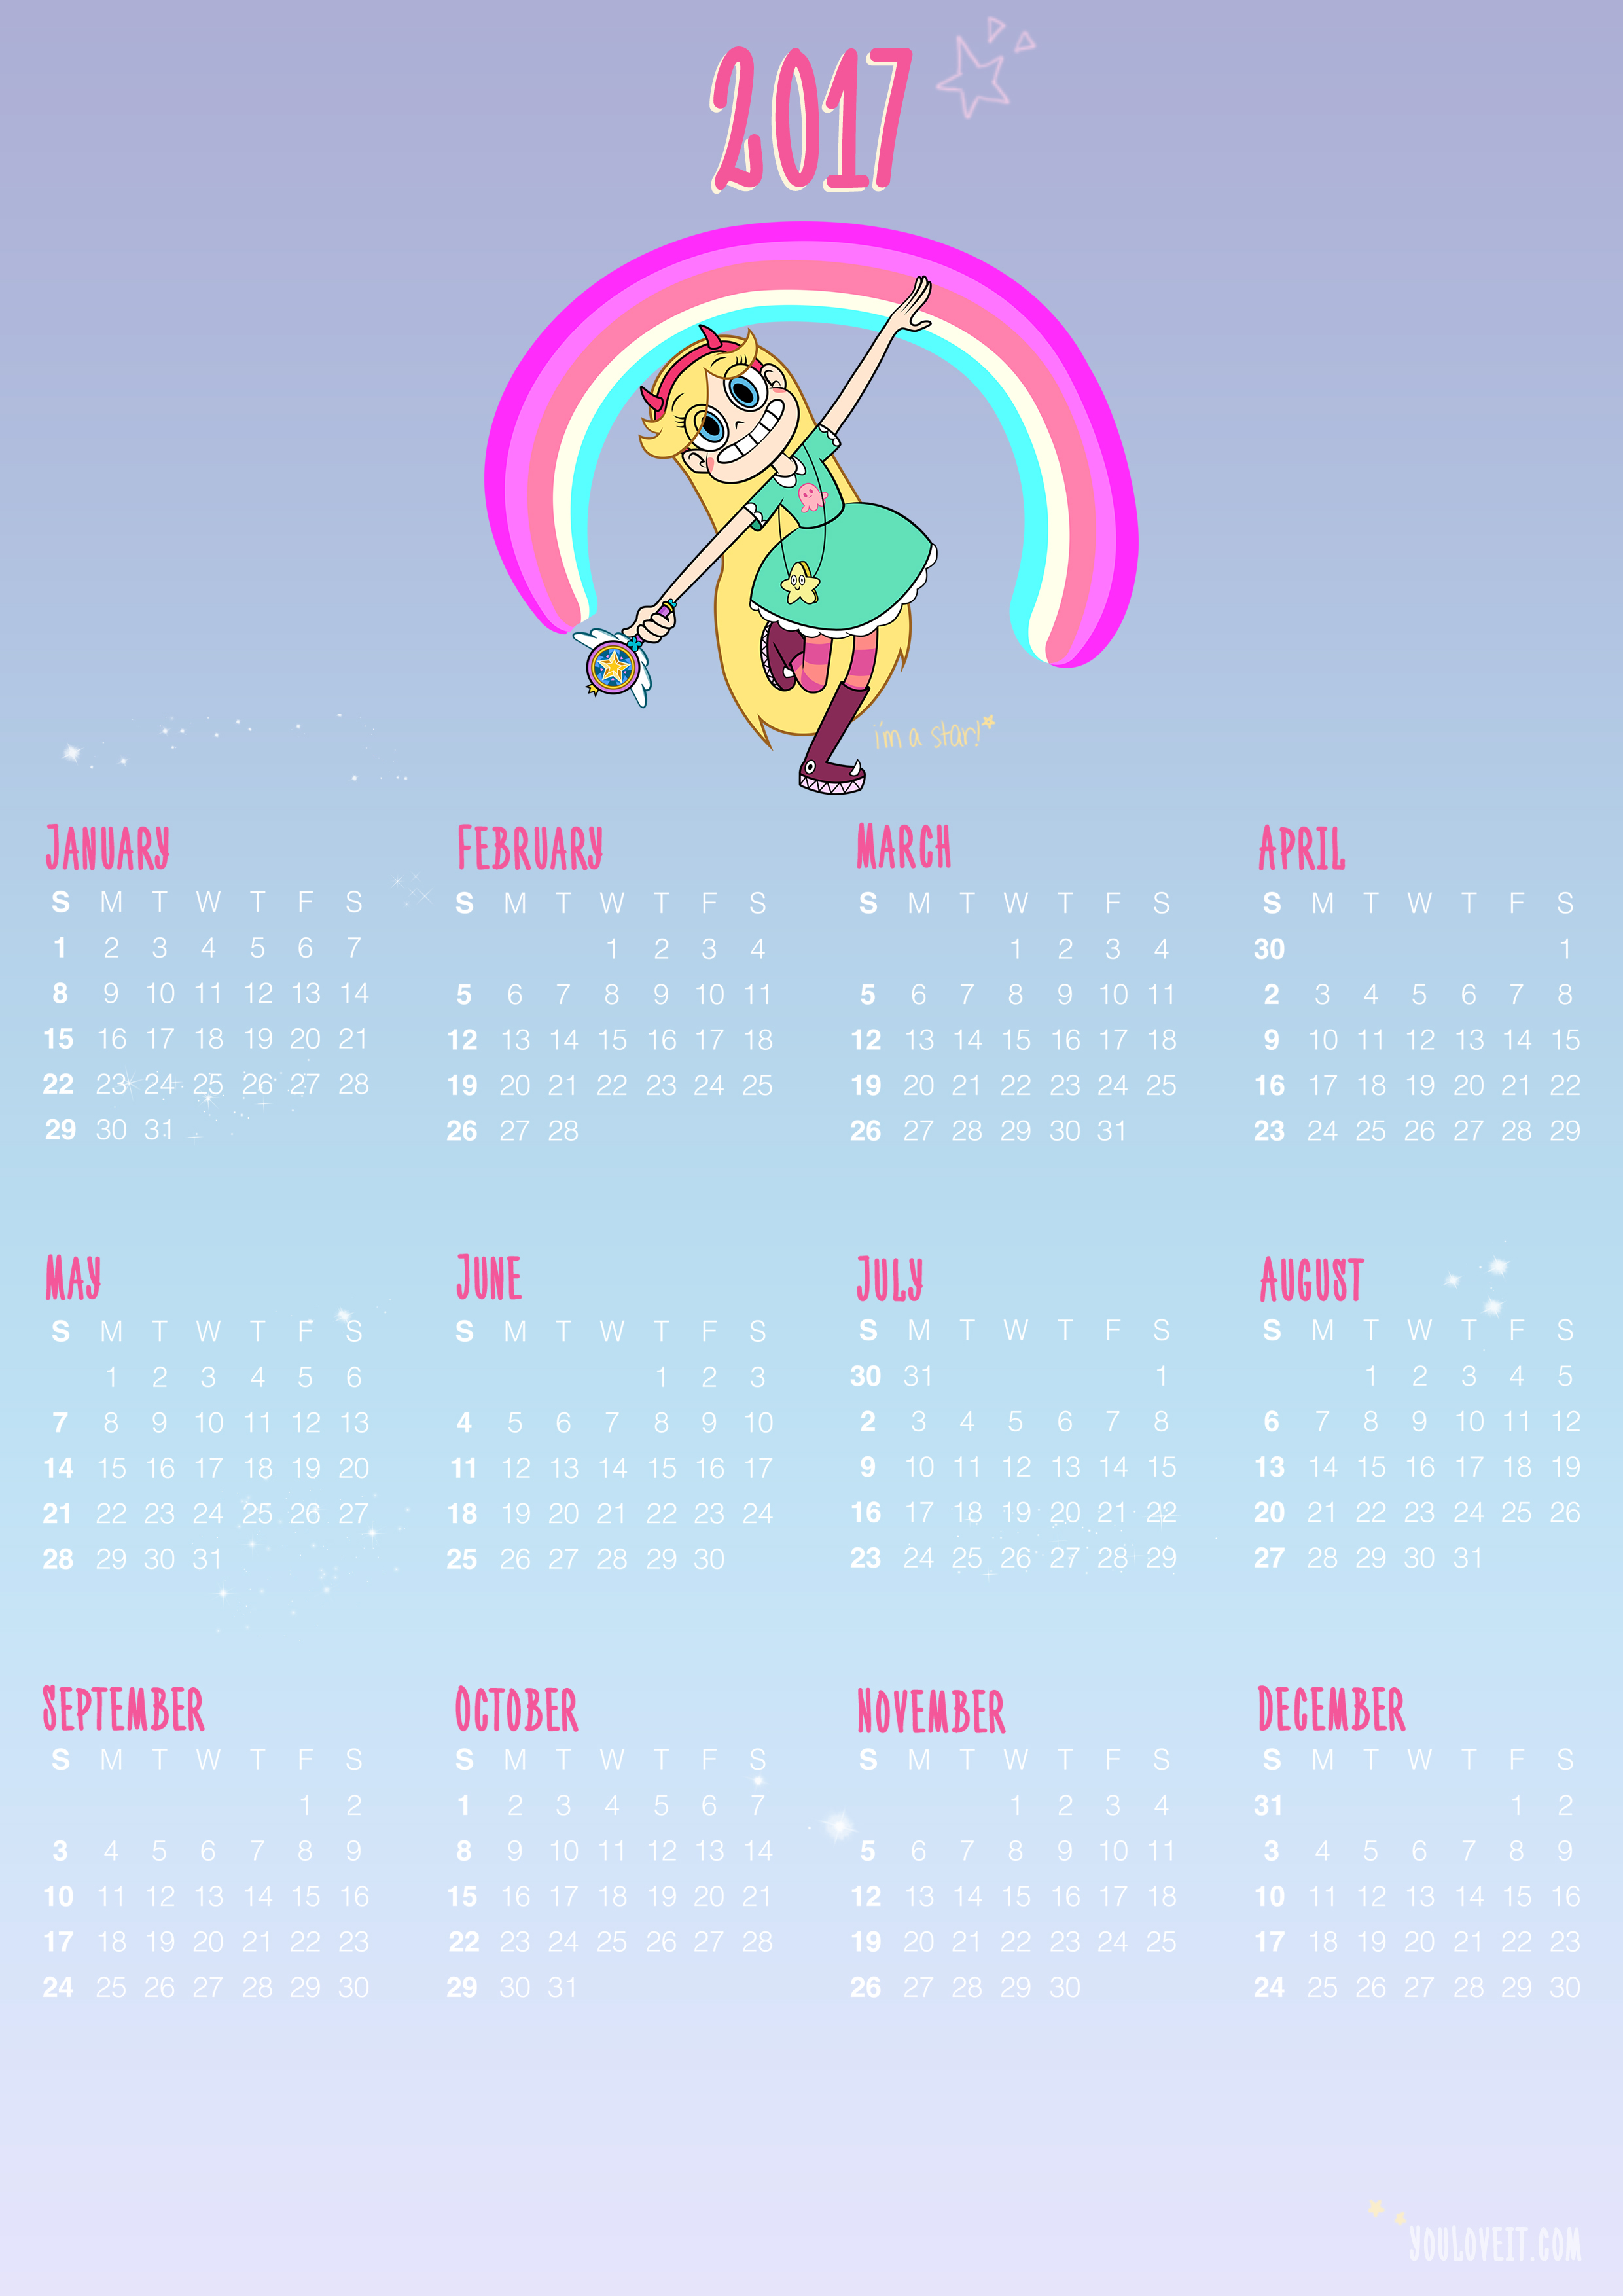 Star Vs The Forces Of Evil Calendars 2017 Youloveit Com